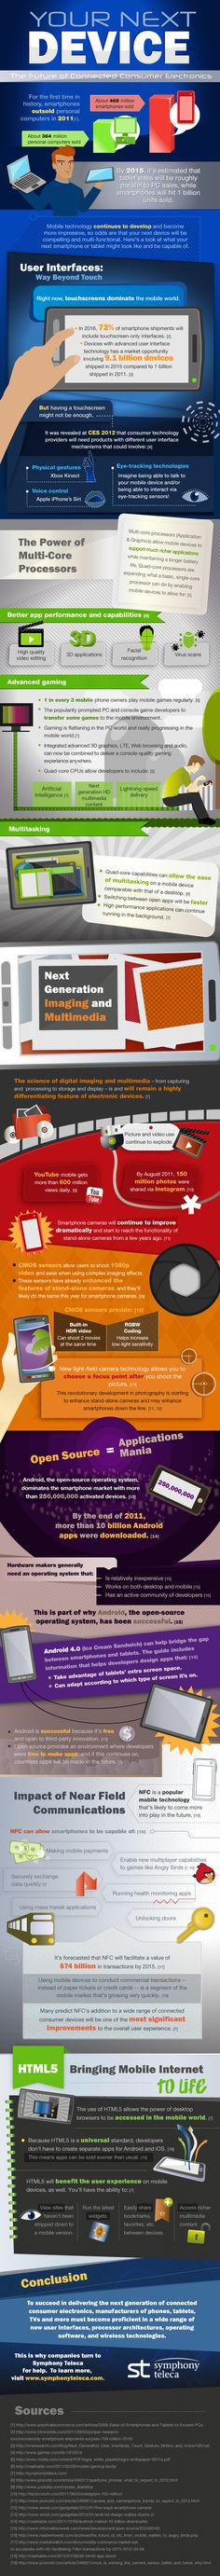 Infographic: Features your next smartphone mayhave